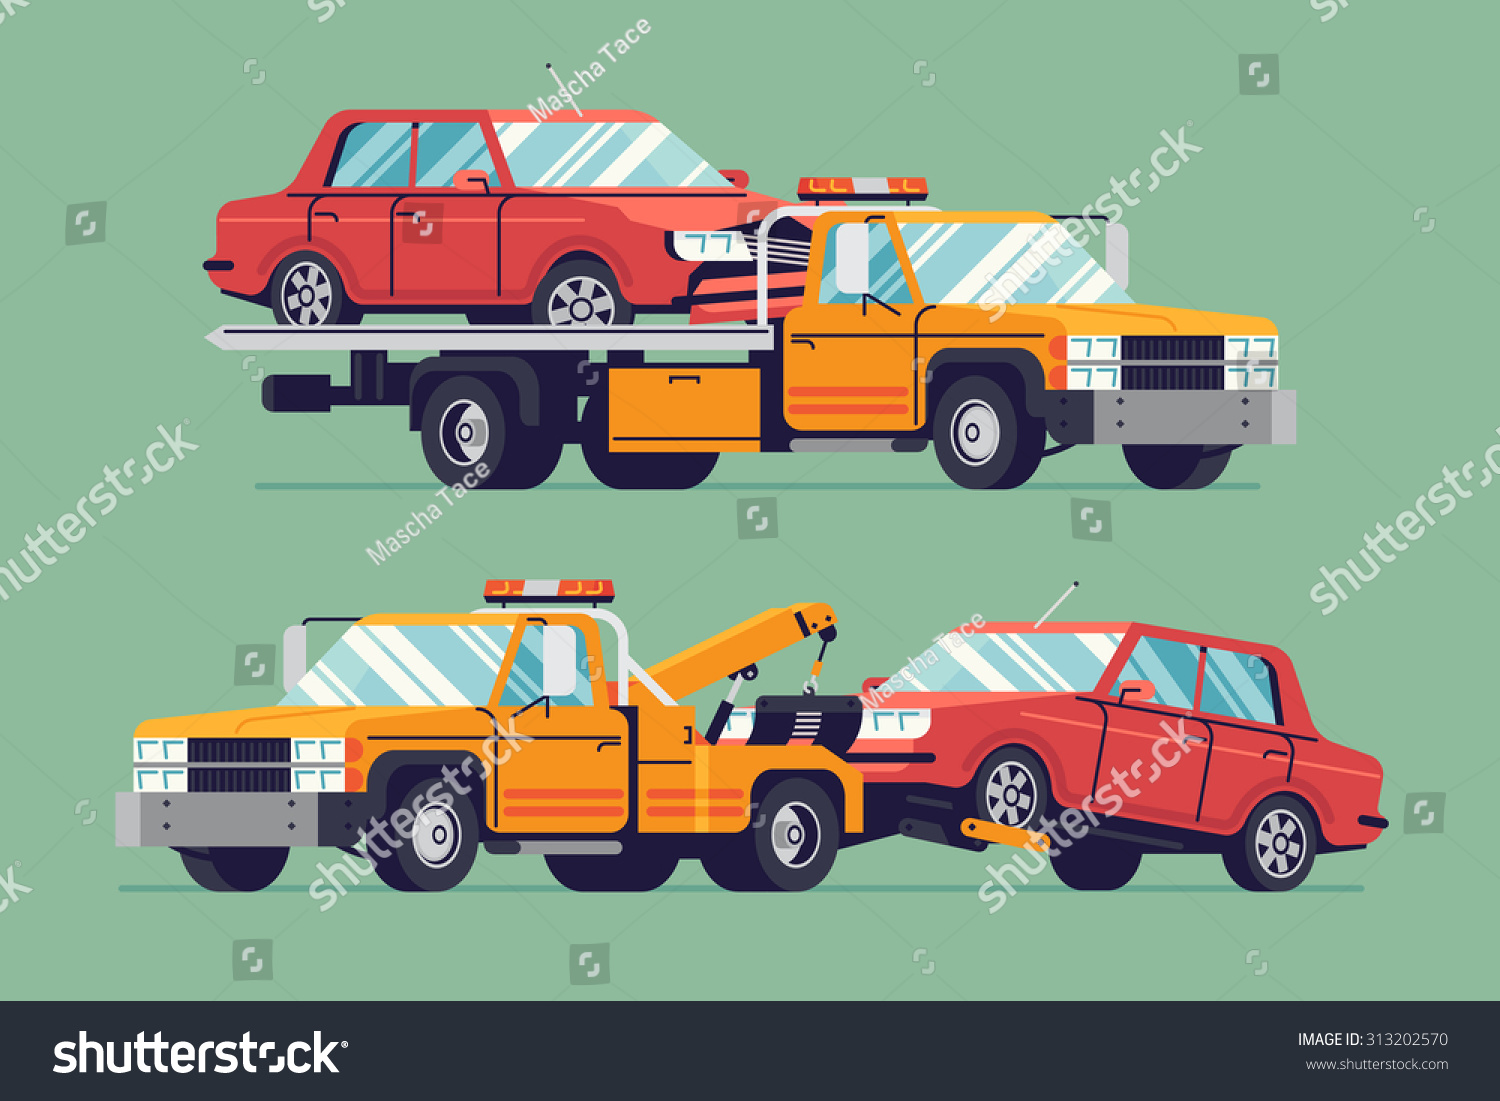 Cool Flat Towing Trucks With Broken Cars | Road Car Repair Service  Assistance Vehicles With Damaged